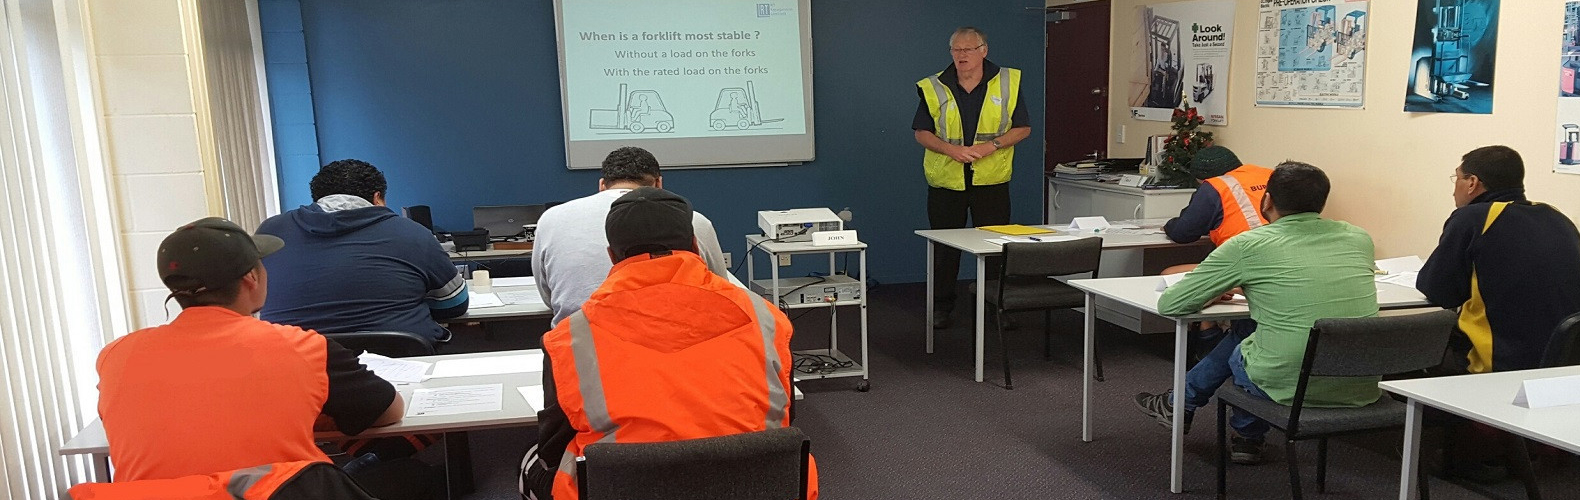 Forklift Training Certification In Calgary